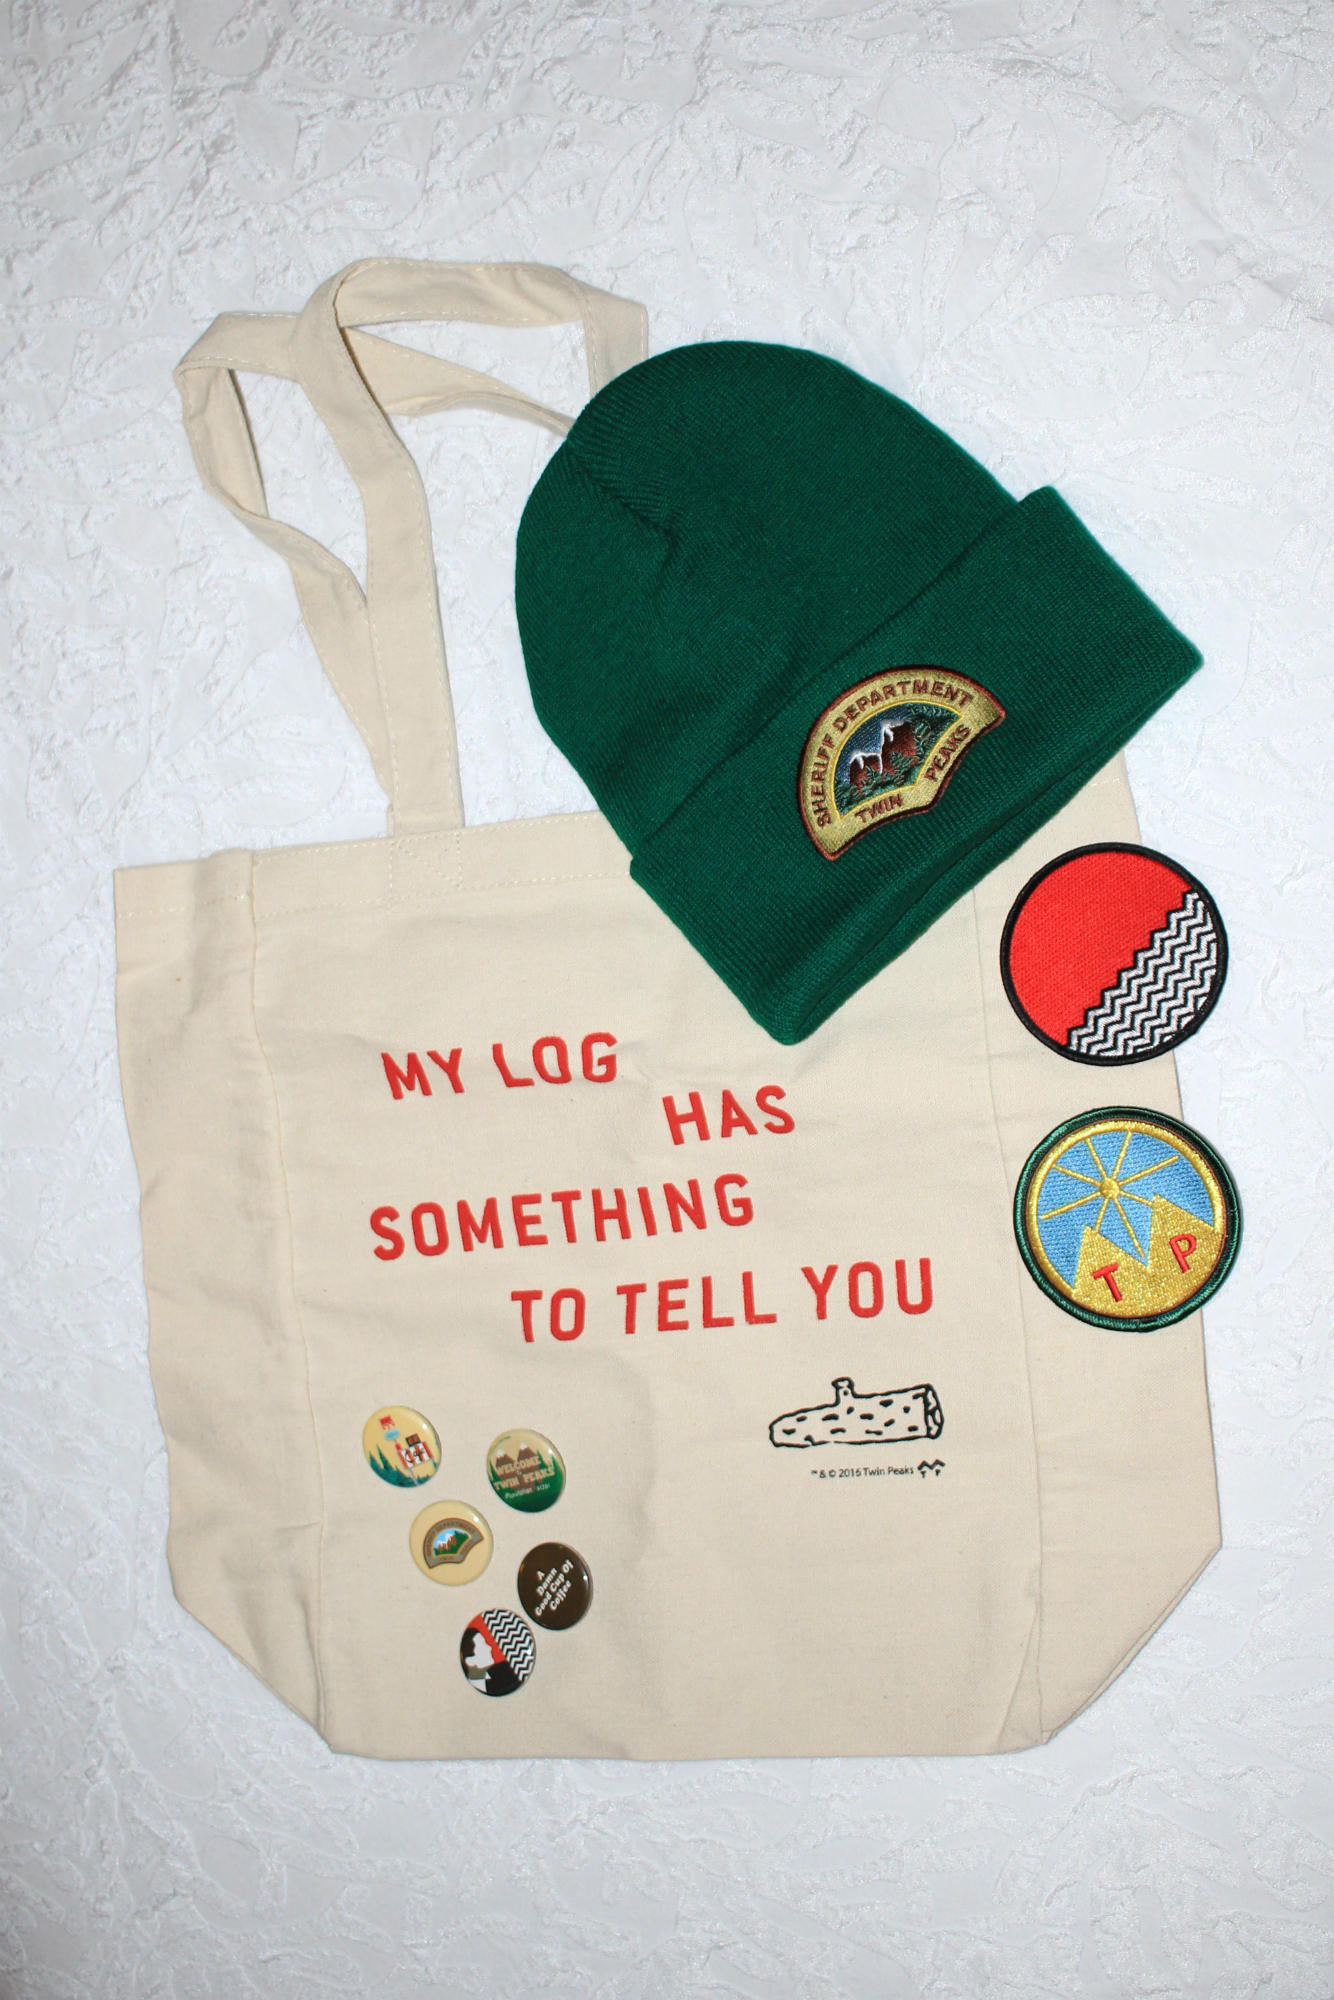 Twin Peaks Lodge Swag // Photo by Heather Kaplan